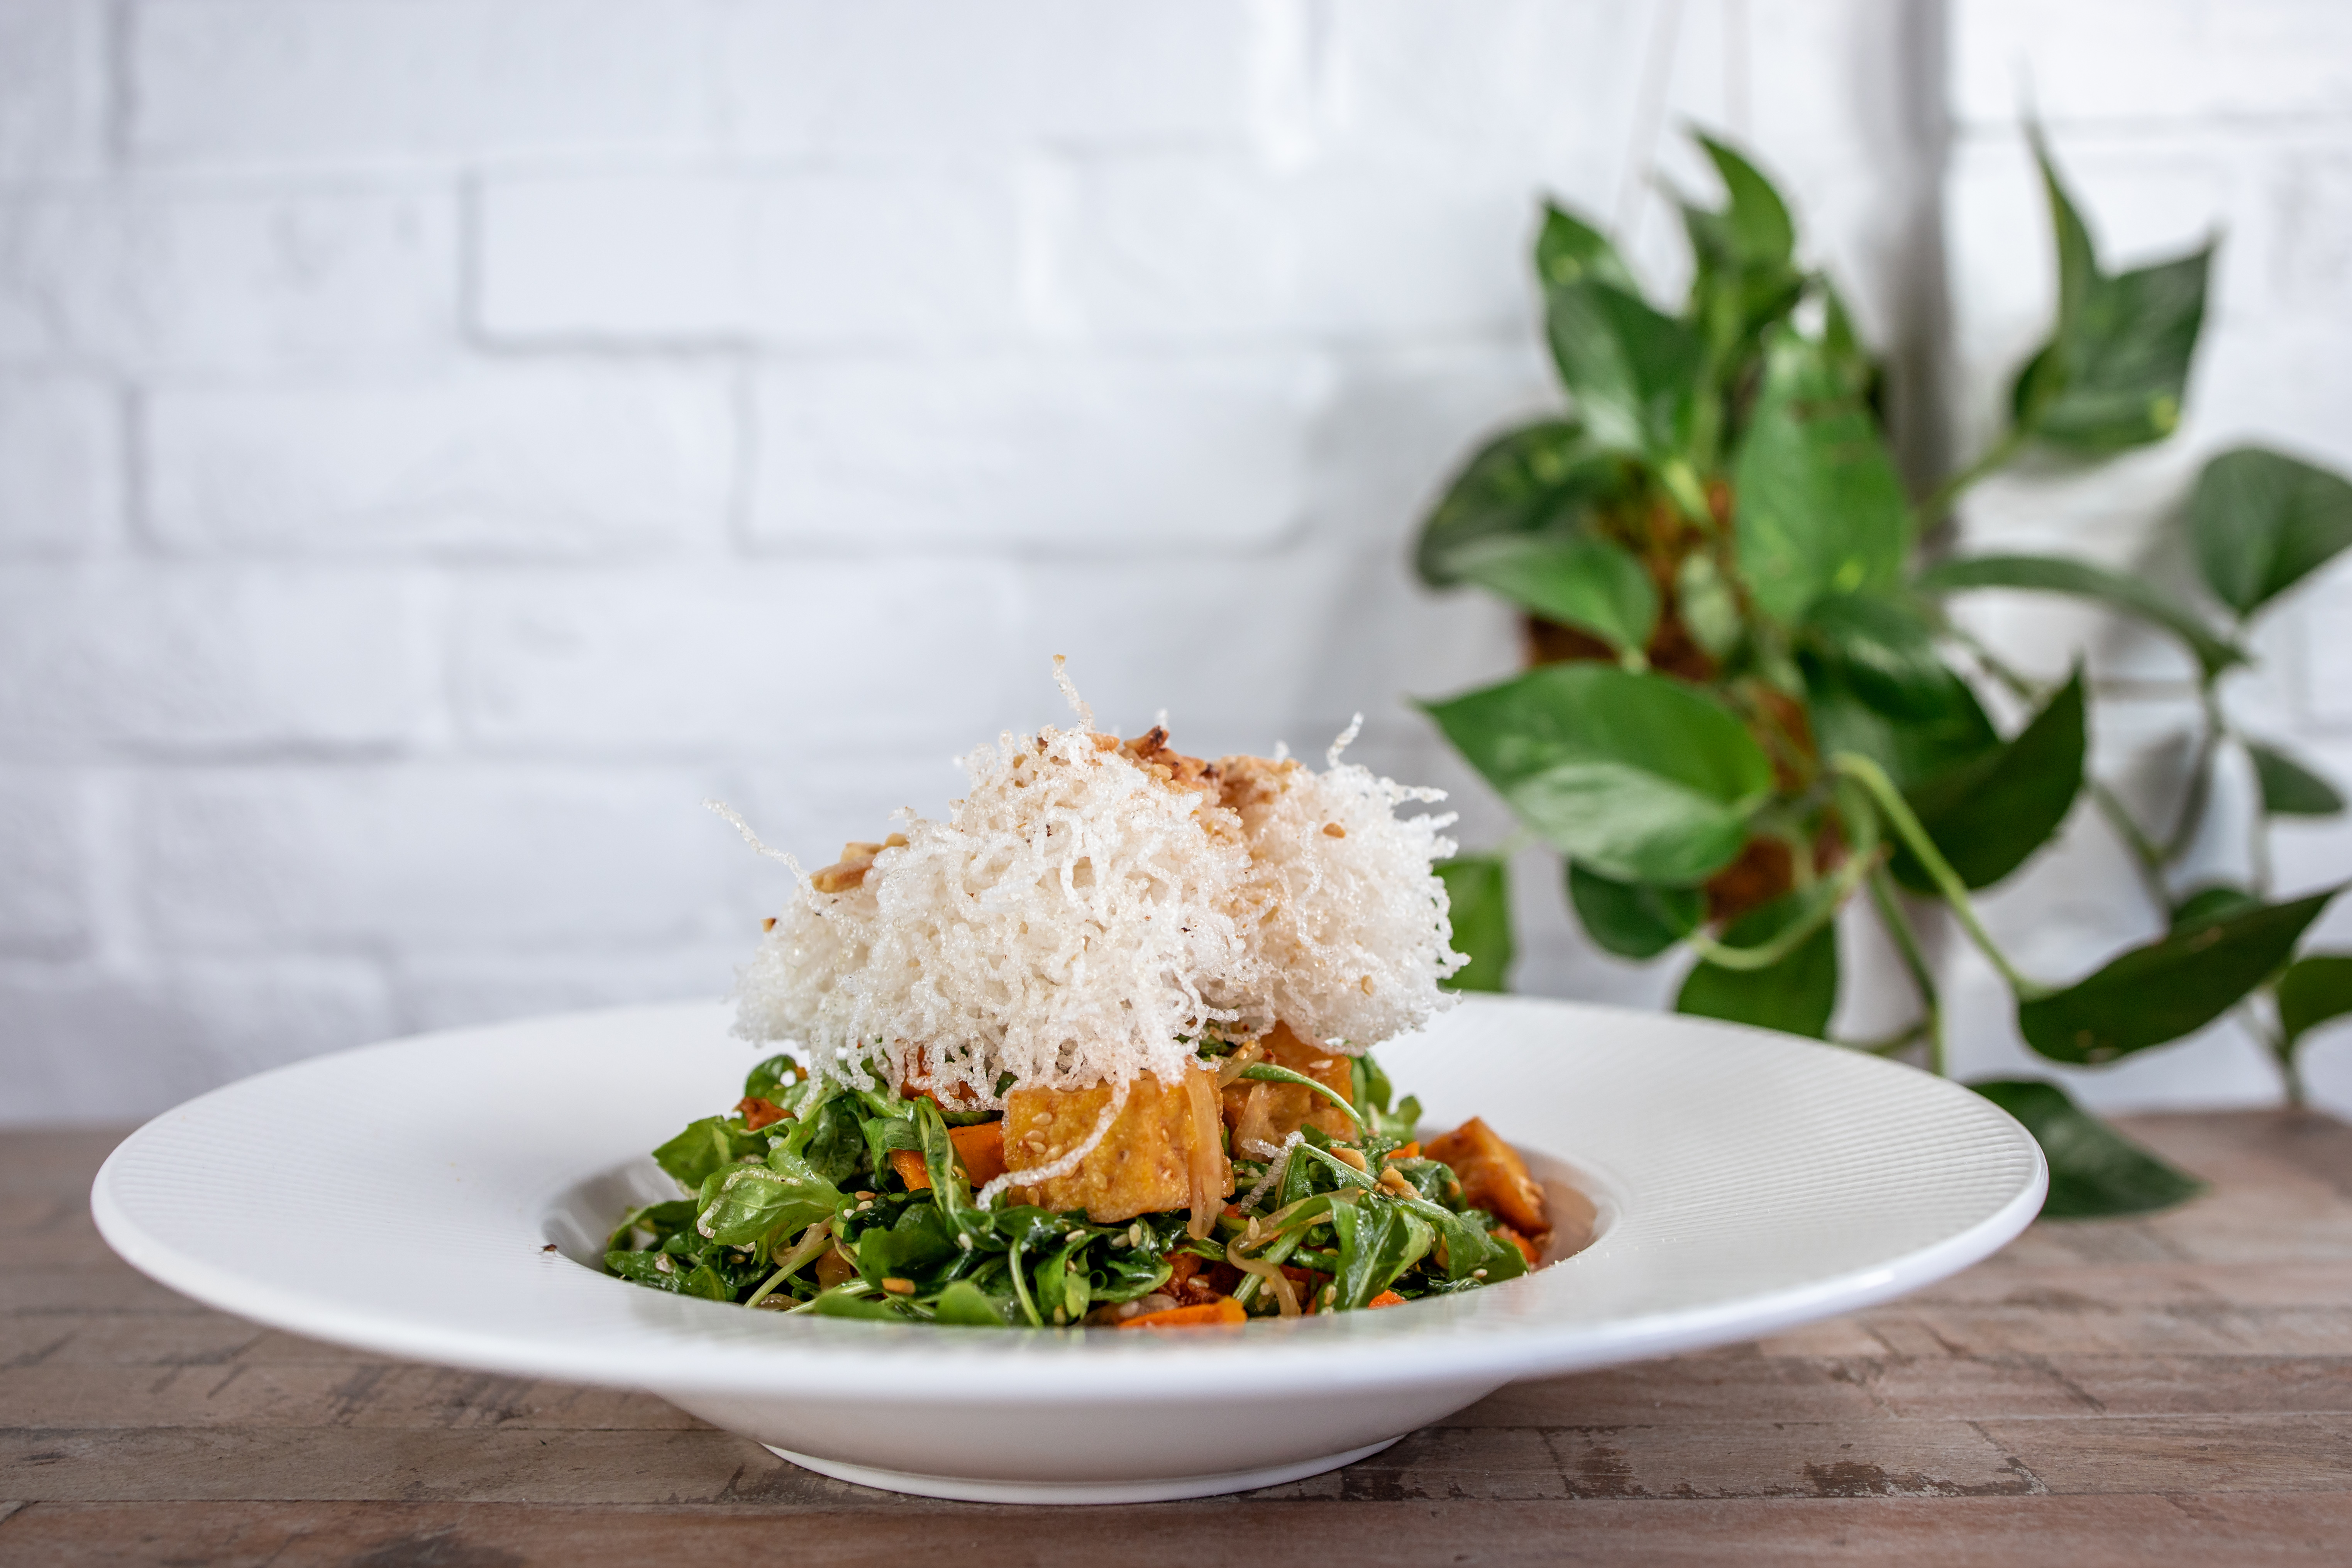 A white plate sits on a table in front of a white brick wall with a plant in the background. On the plate is a tall layered salad with greens on the bottom, tofu in the middle, and crispy white noodles on top.